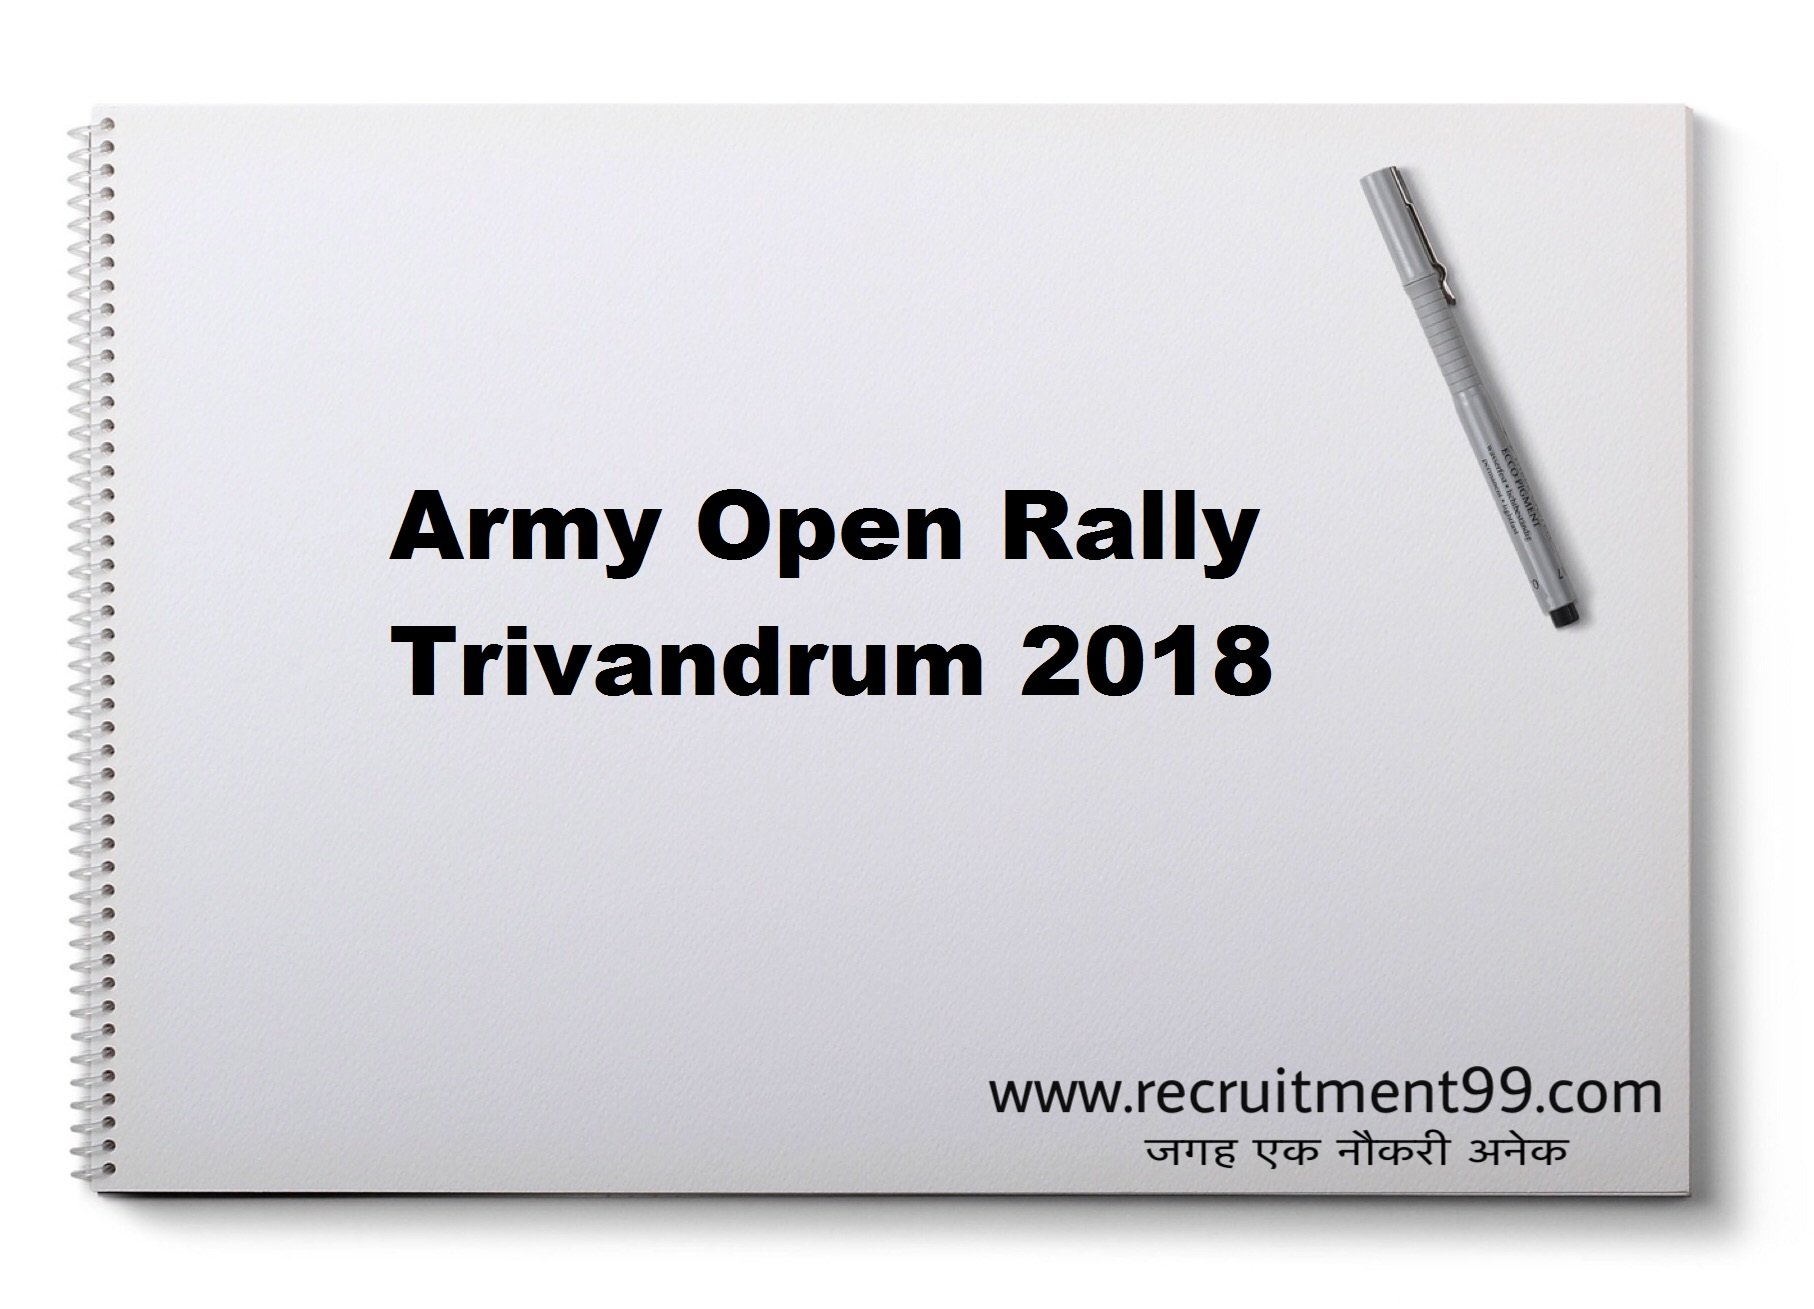 Army Open Rally Trivandrum Recruitment Admit Card Result 2018